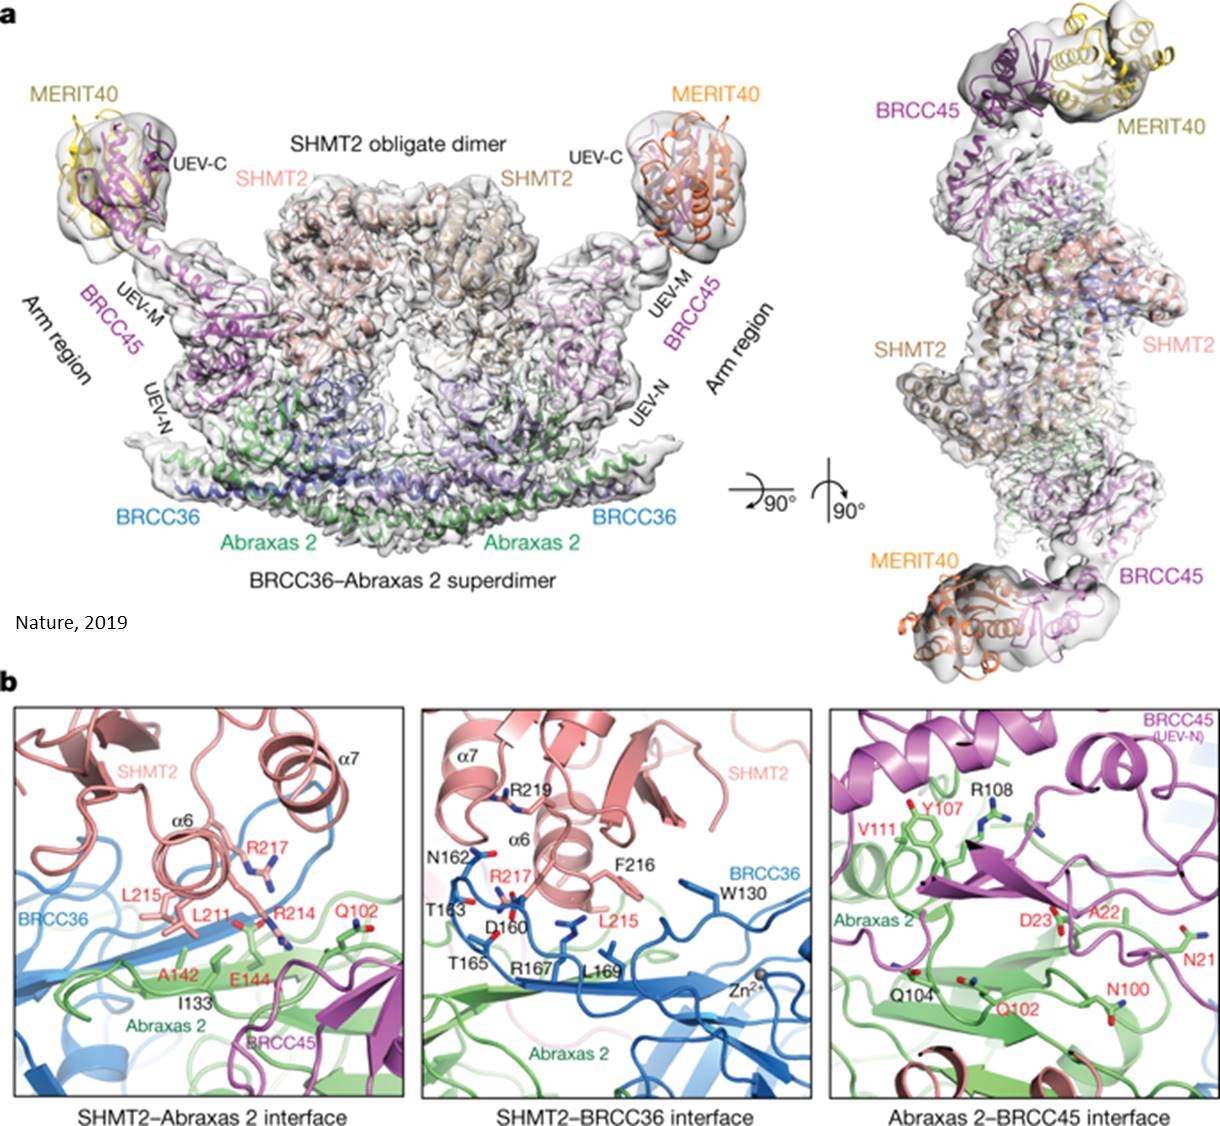 Protein complex structure explains how an immune system become overactive